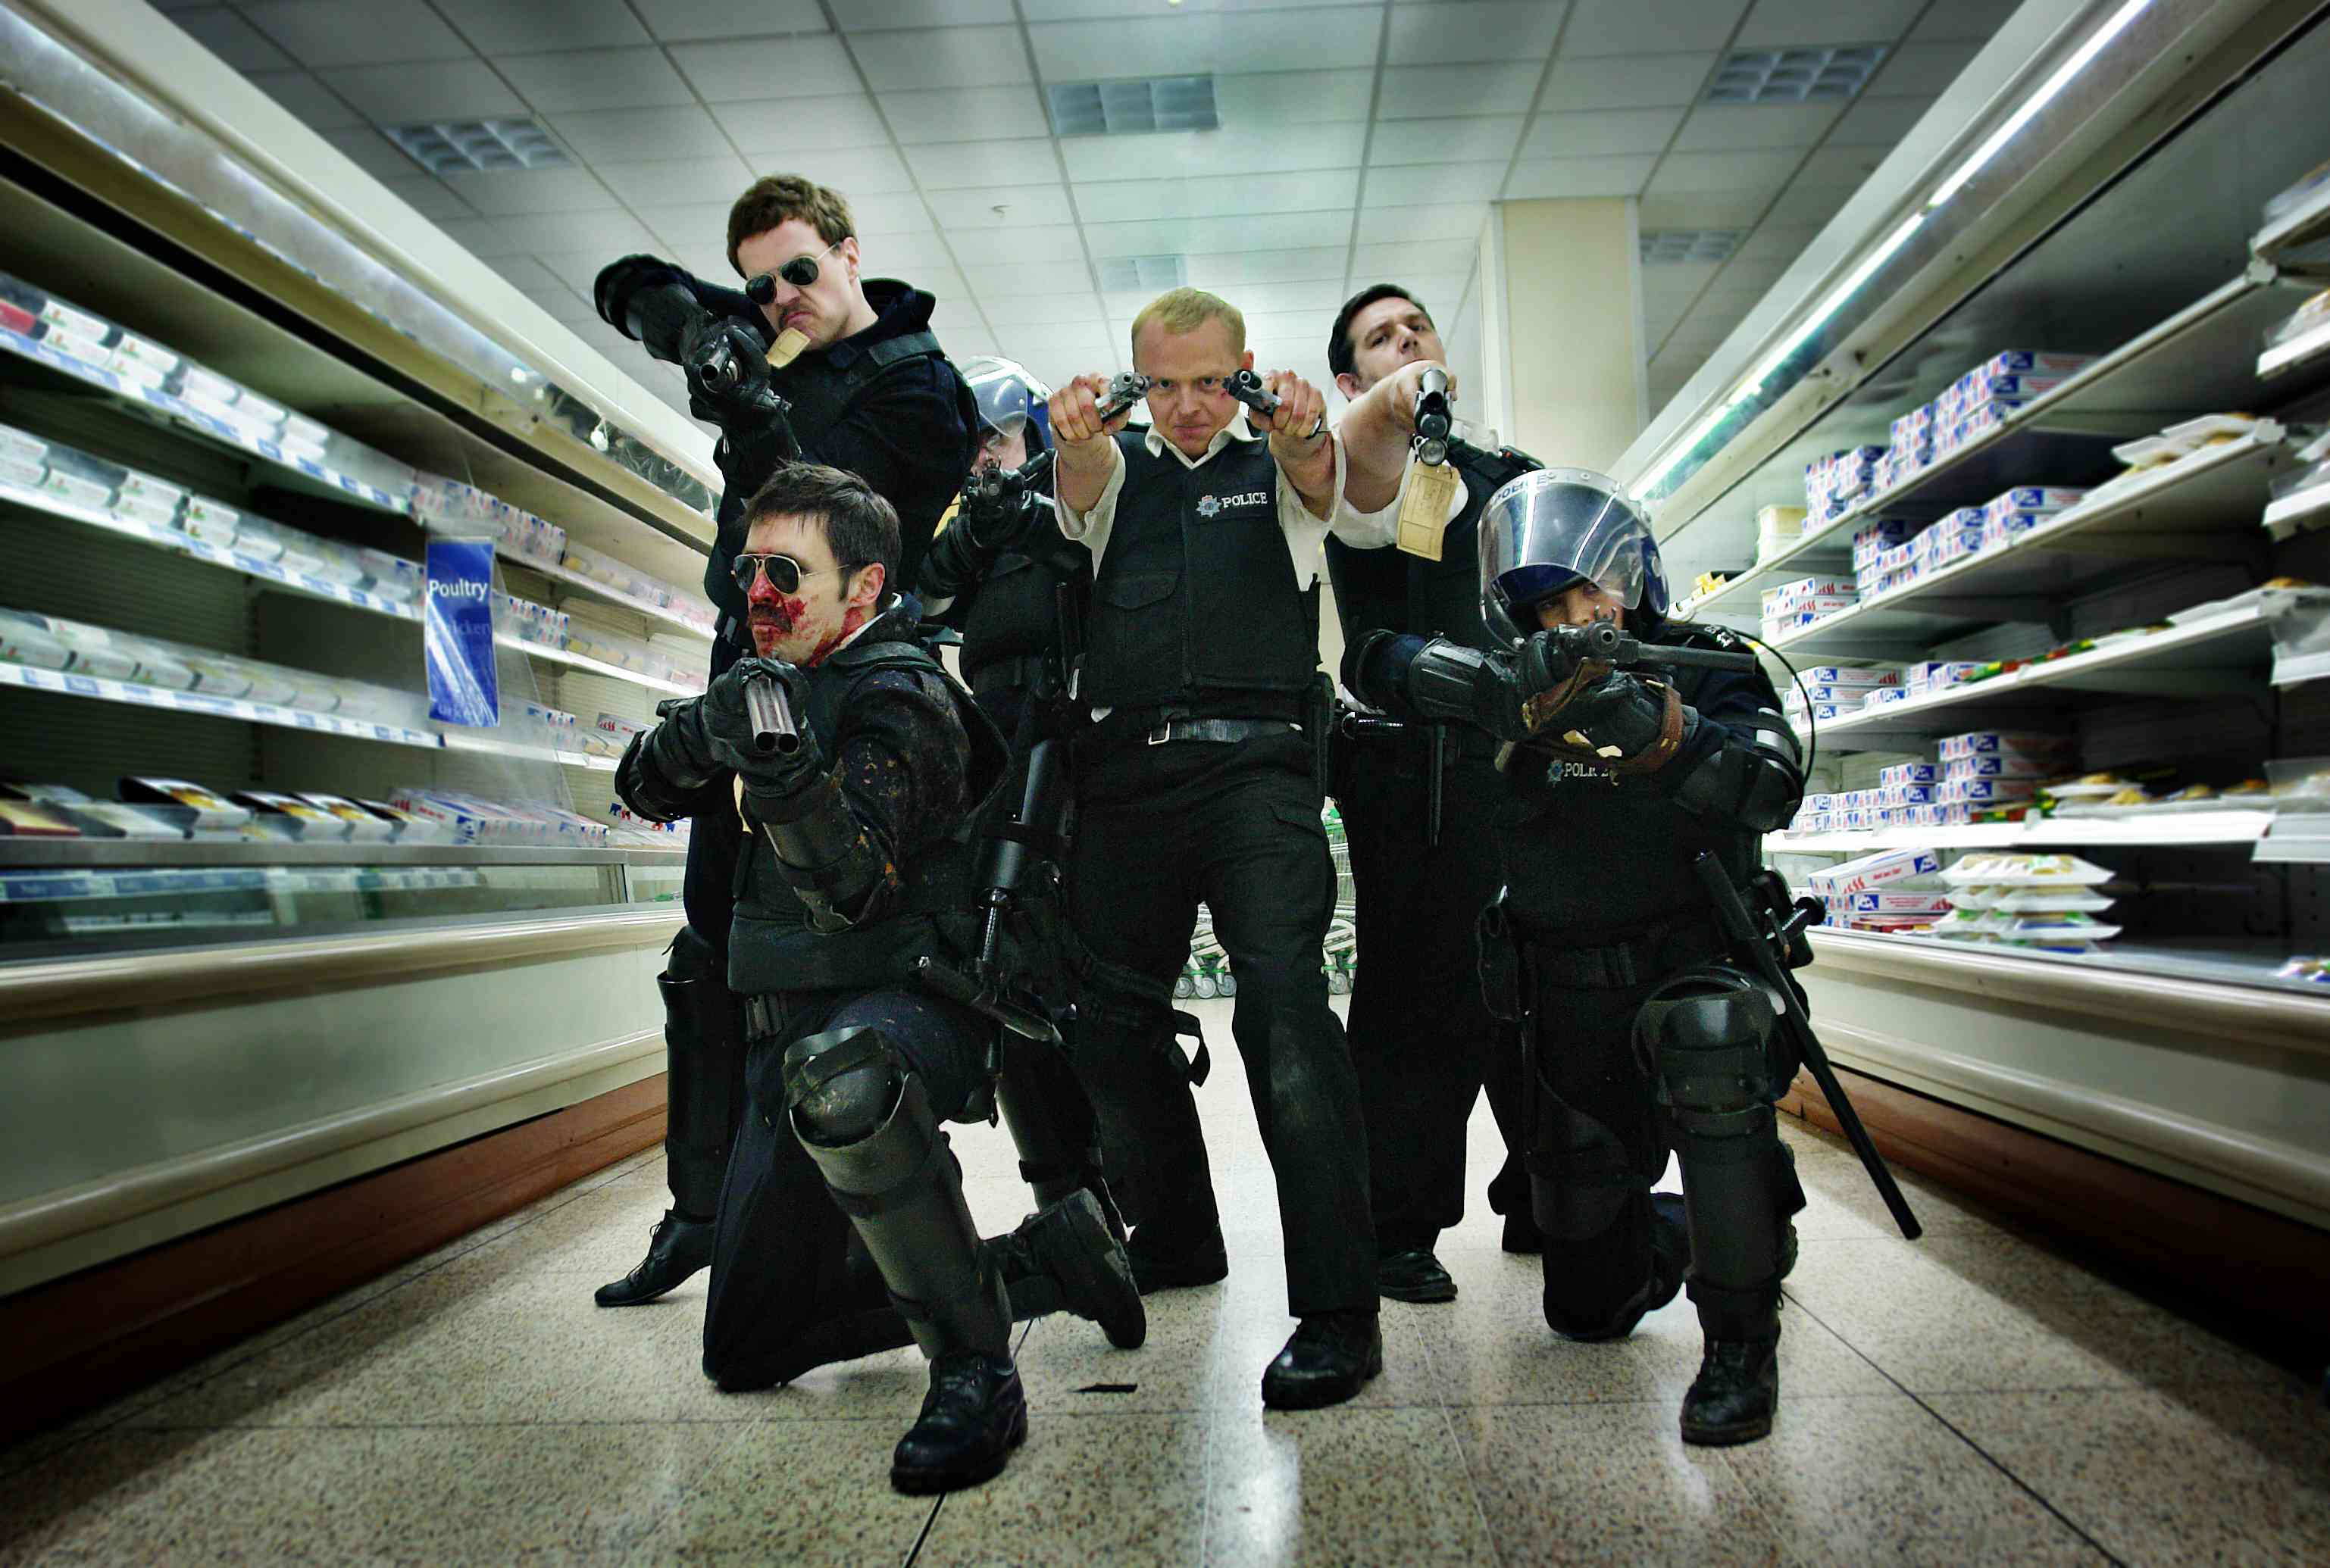 Hot Fuzz - Assalto al supermercato